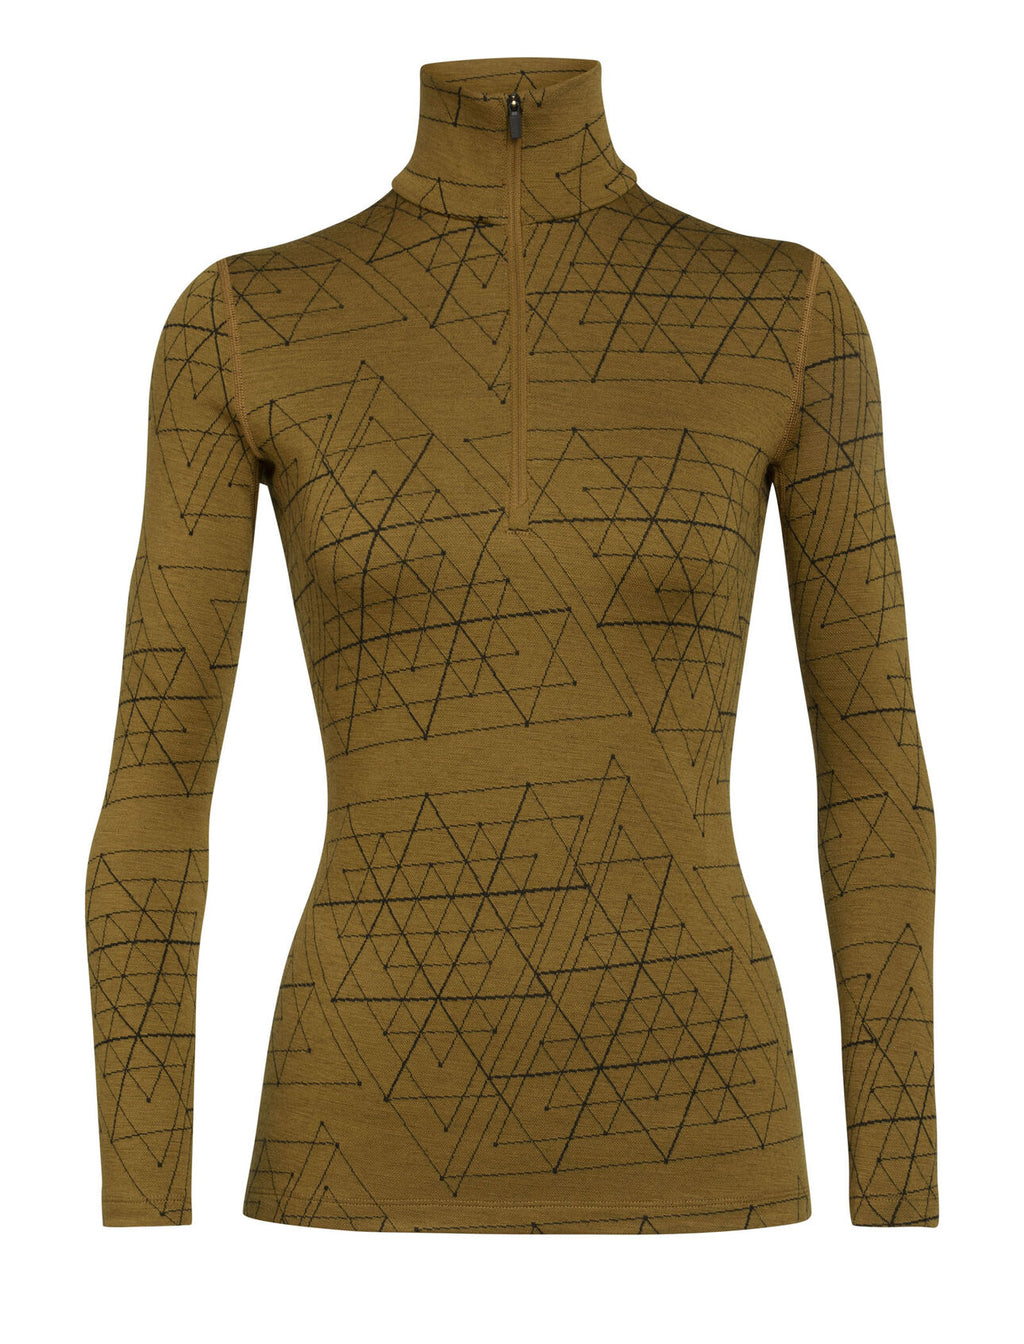 Women's Merino 250 Vertex Long Sleeve Half Zip Thermal Top Ice Structure